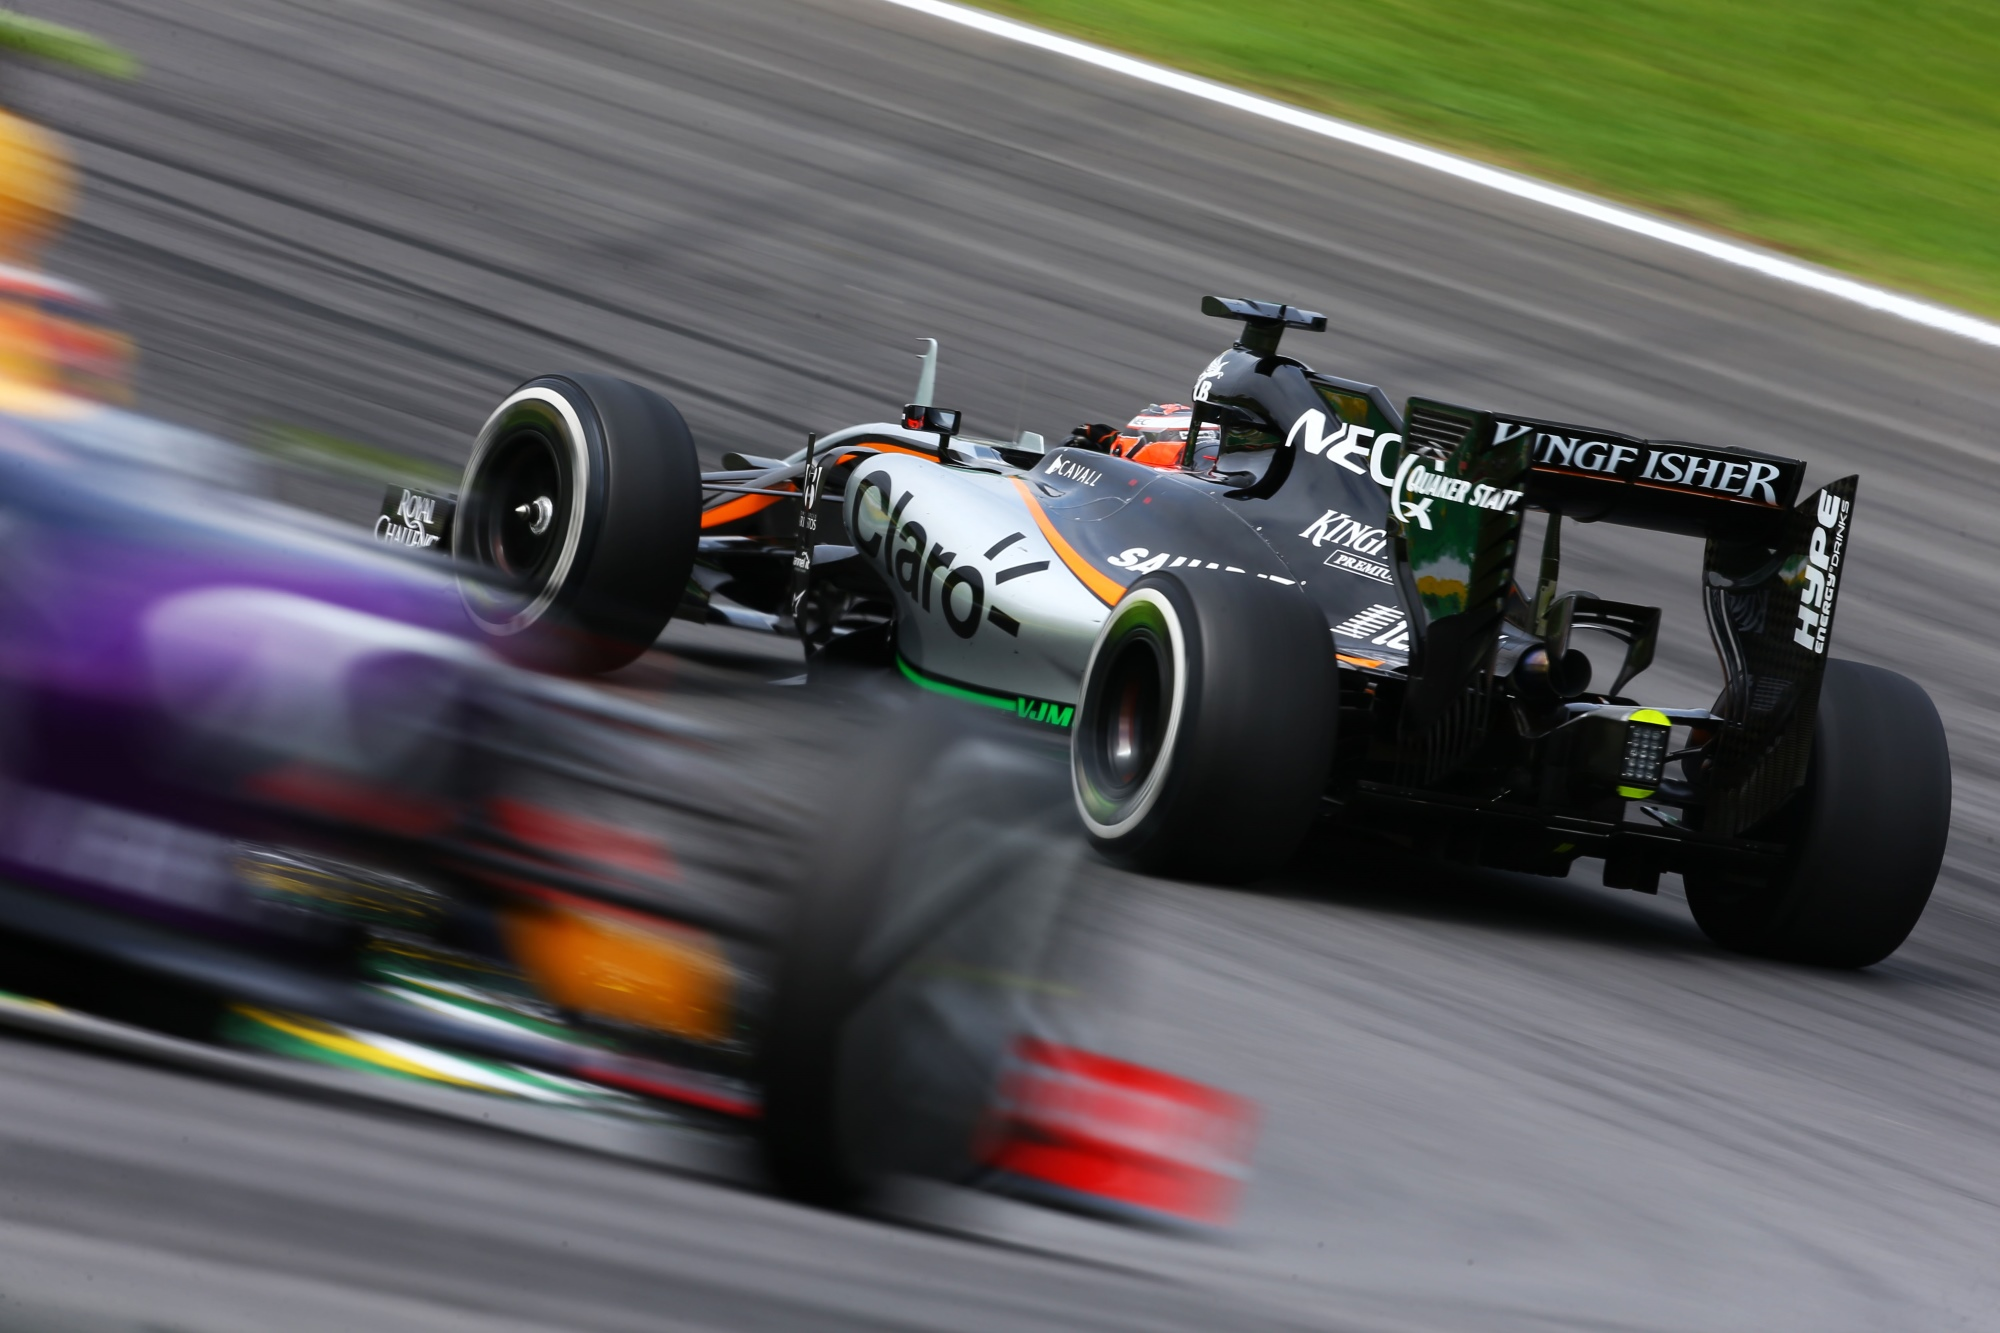 hulkenberg-force-india-kvyat-red-bull-brazil-gp-interlagos-f1-2015.